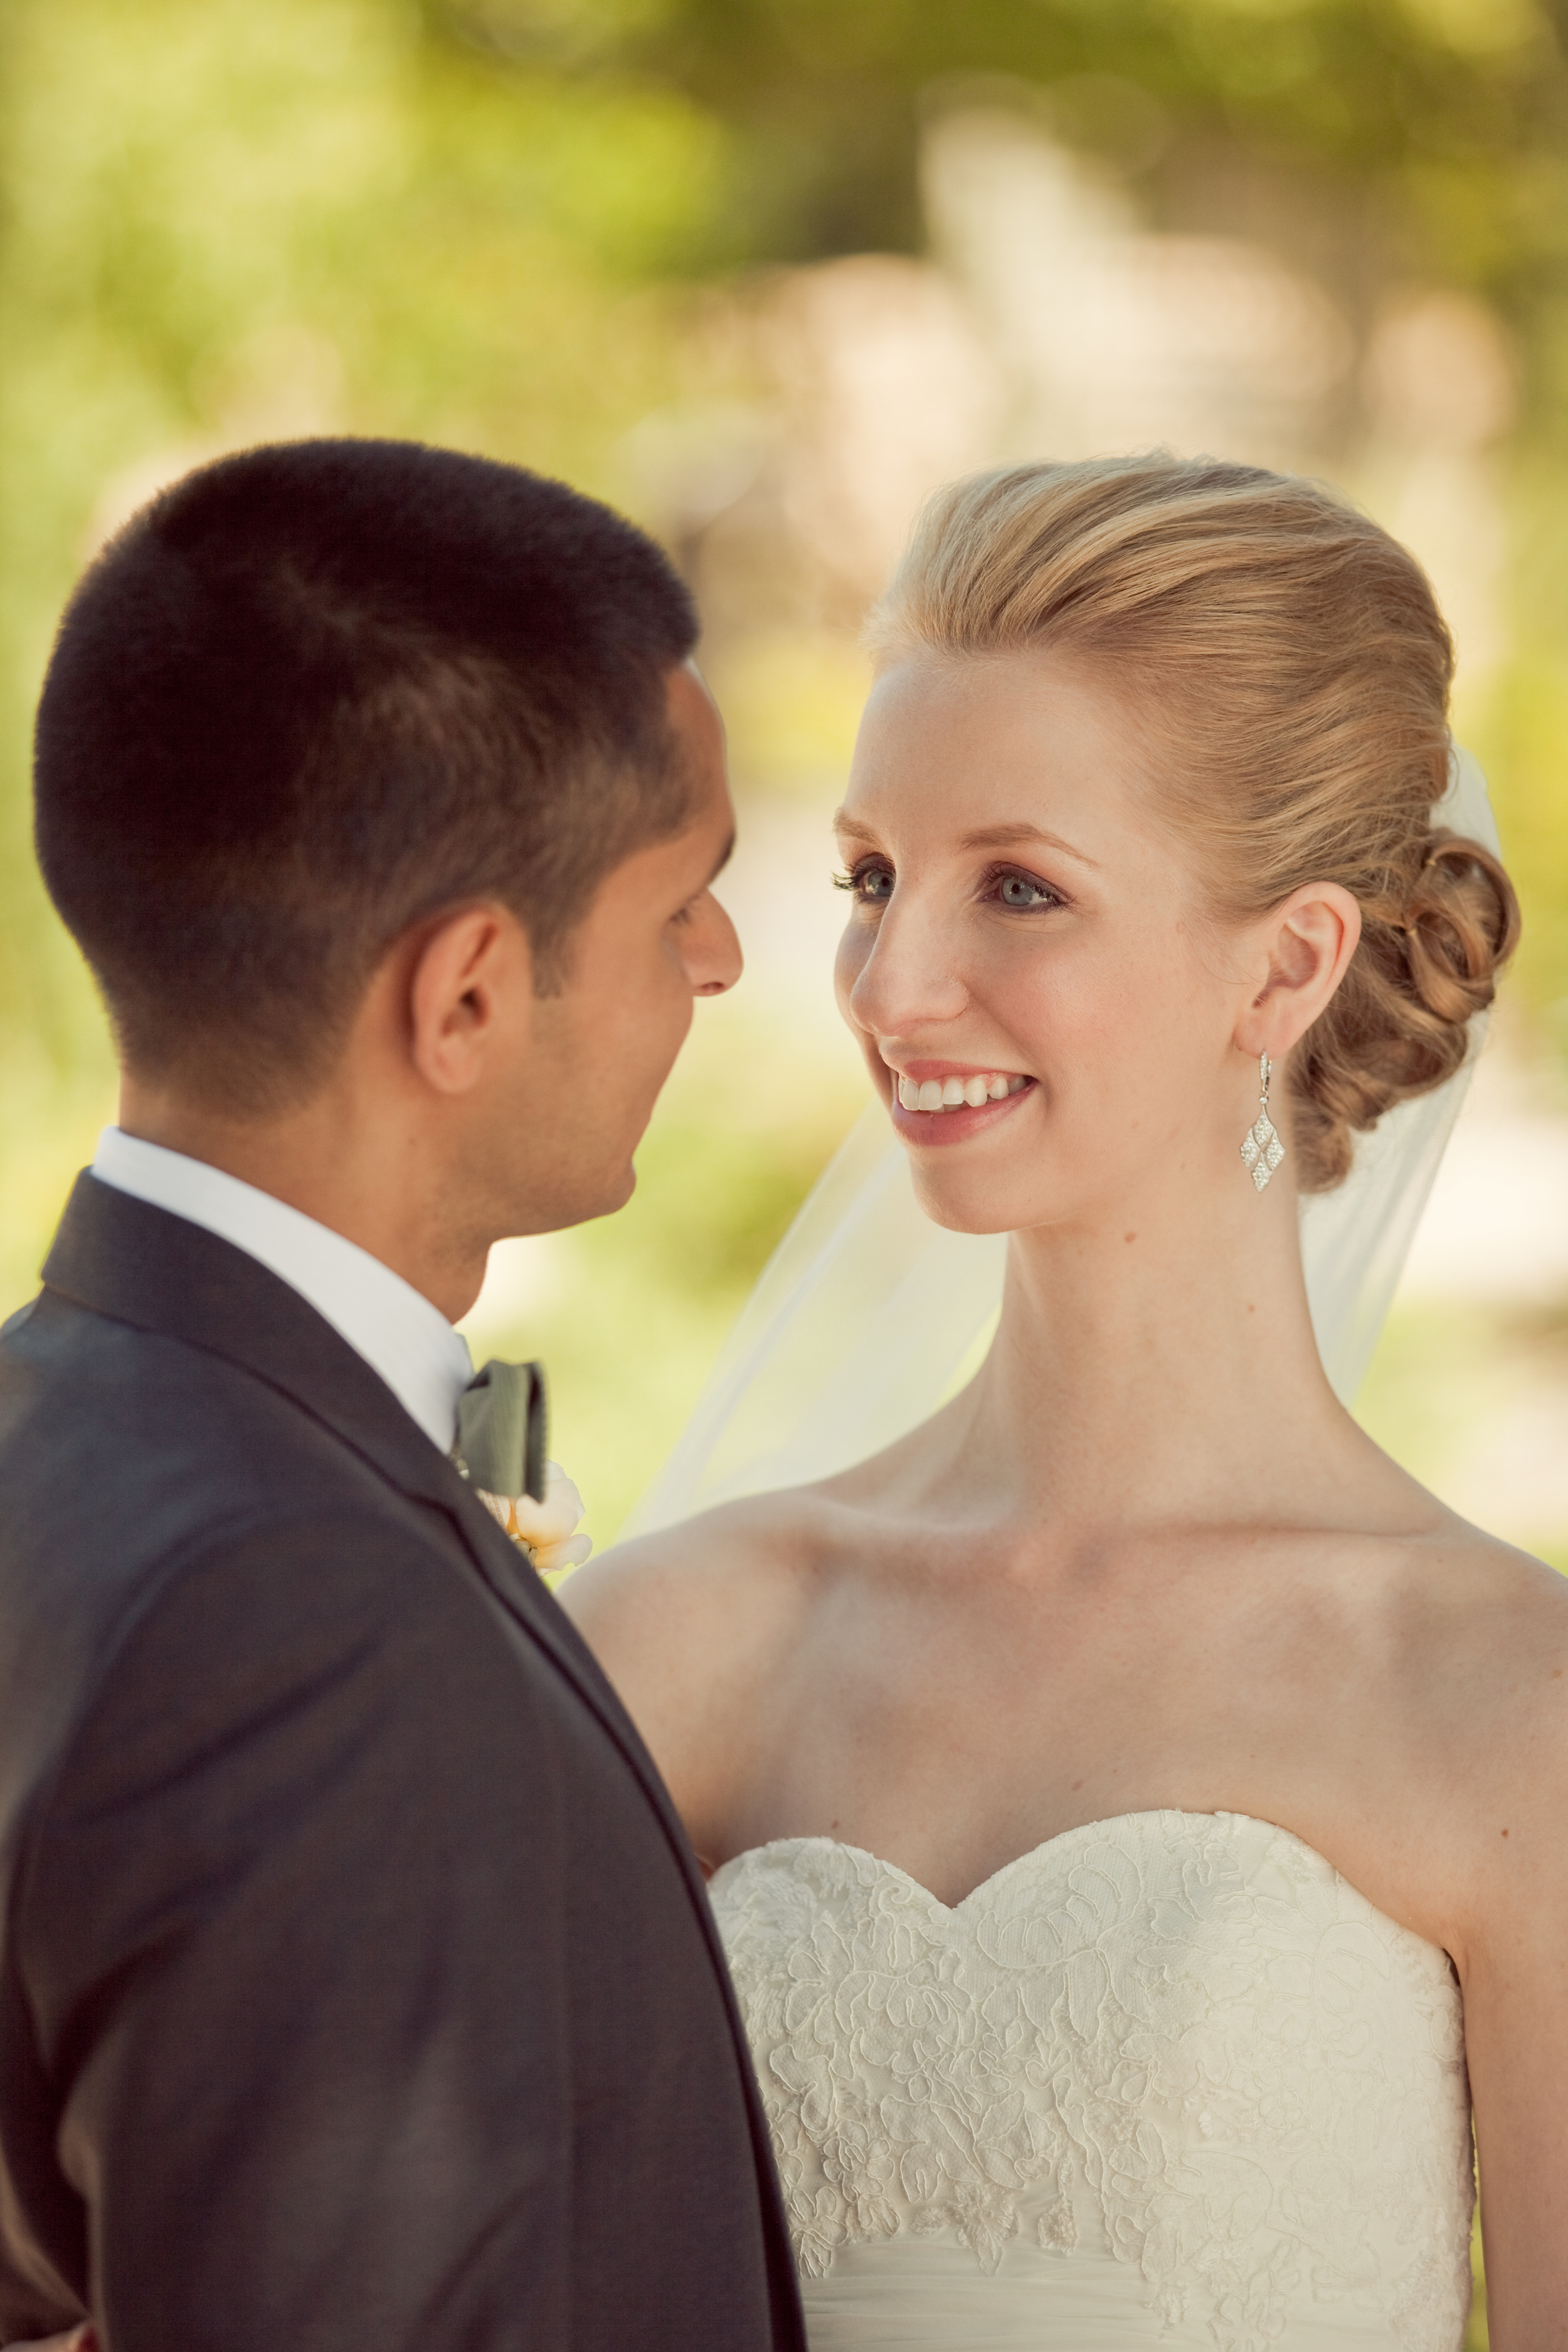 Wedding-Hair-and-Makeup-Carneros-Inn-Napa.jpg